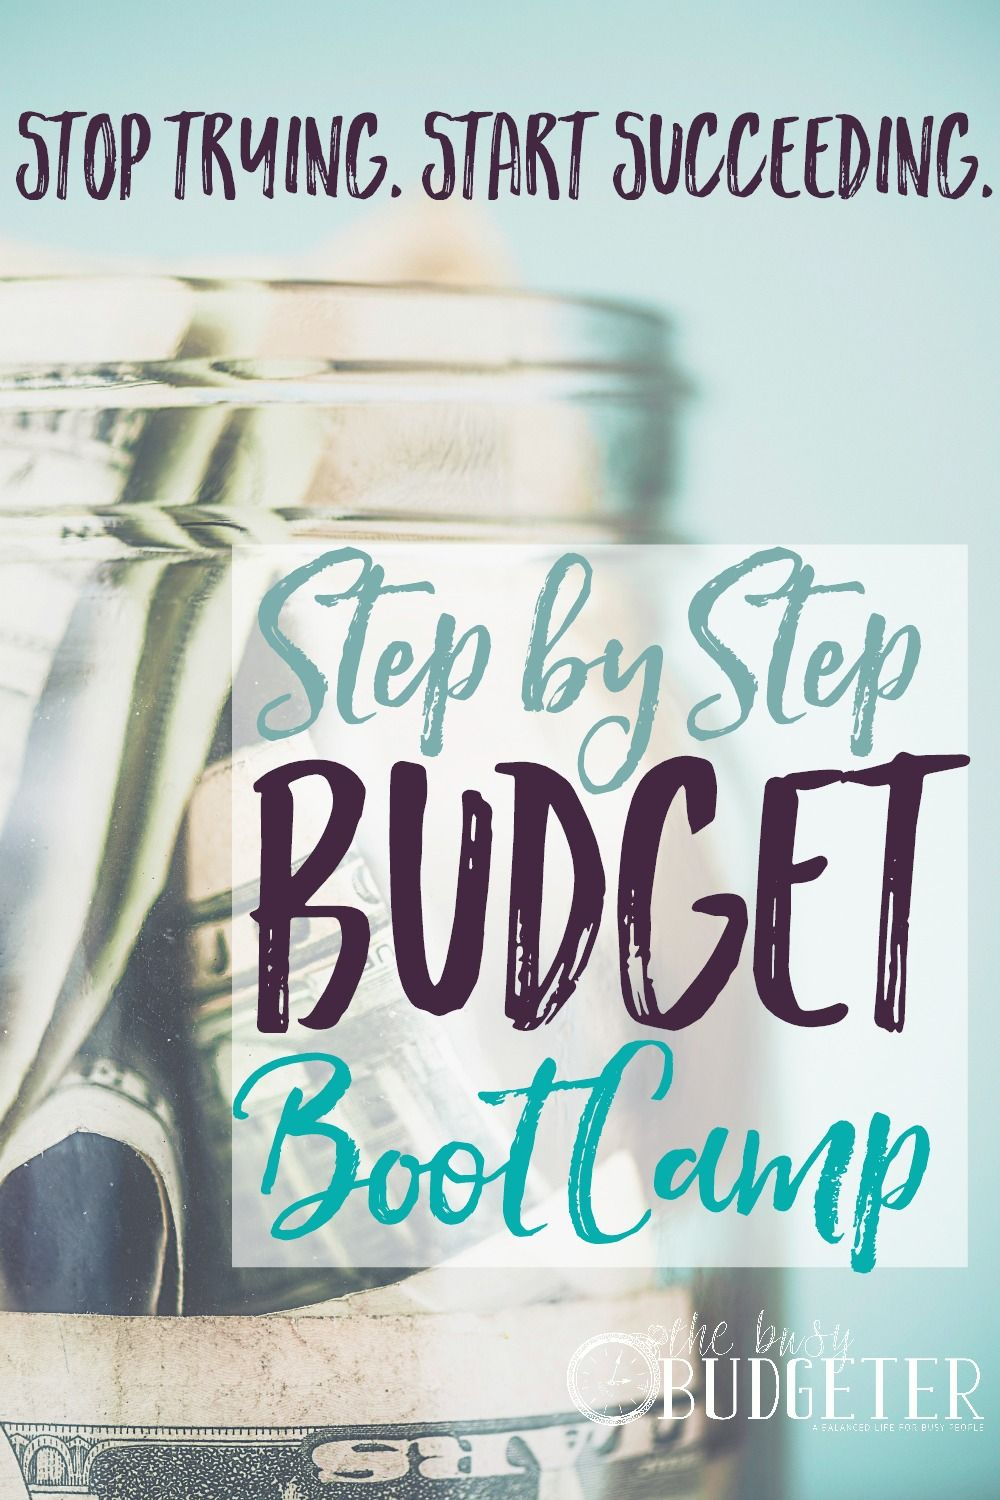 90 Day Budget Boot Camp... This is the first time EVER I was able to ...